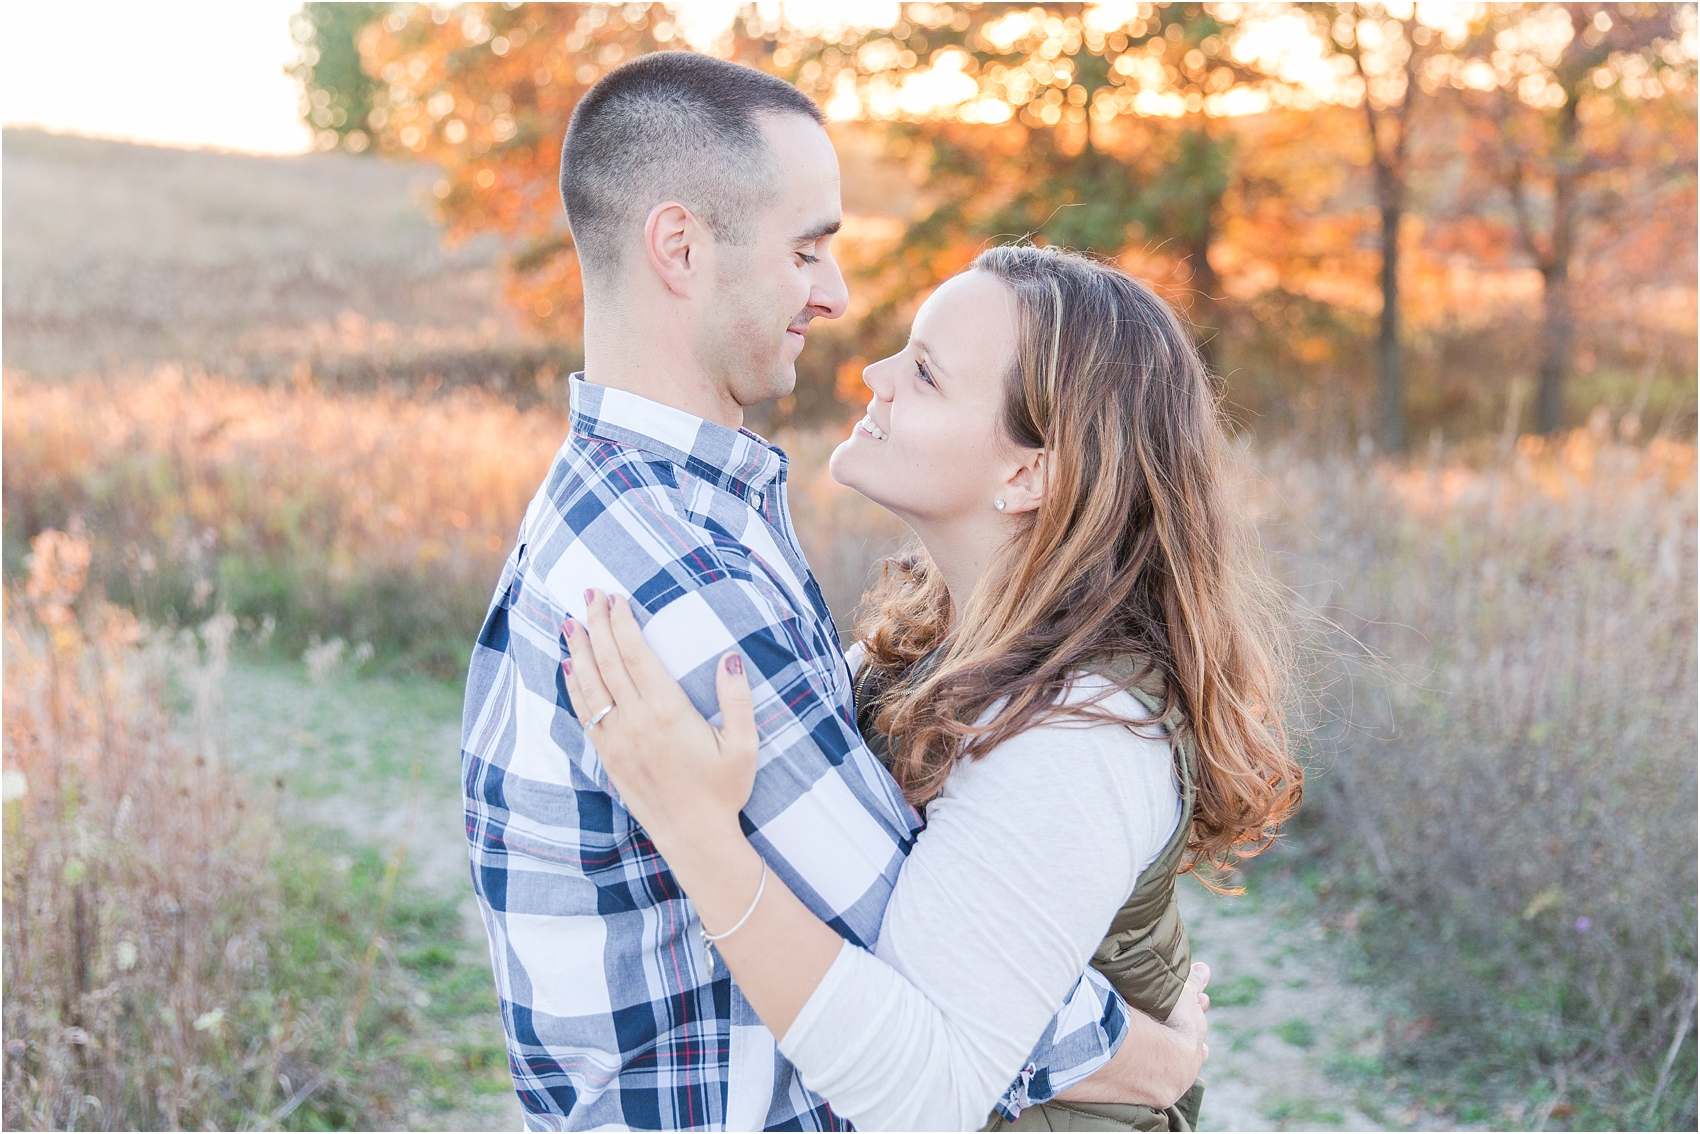 romantic-fall-engagement-photos-at-indian-springs-metropark-in-clarkston-mi-by-courtney-carolyn-photography_0011.jpg